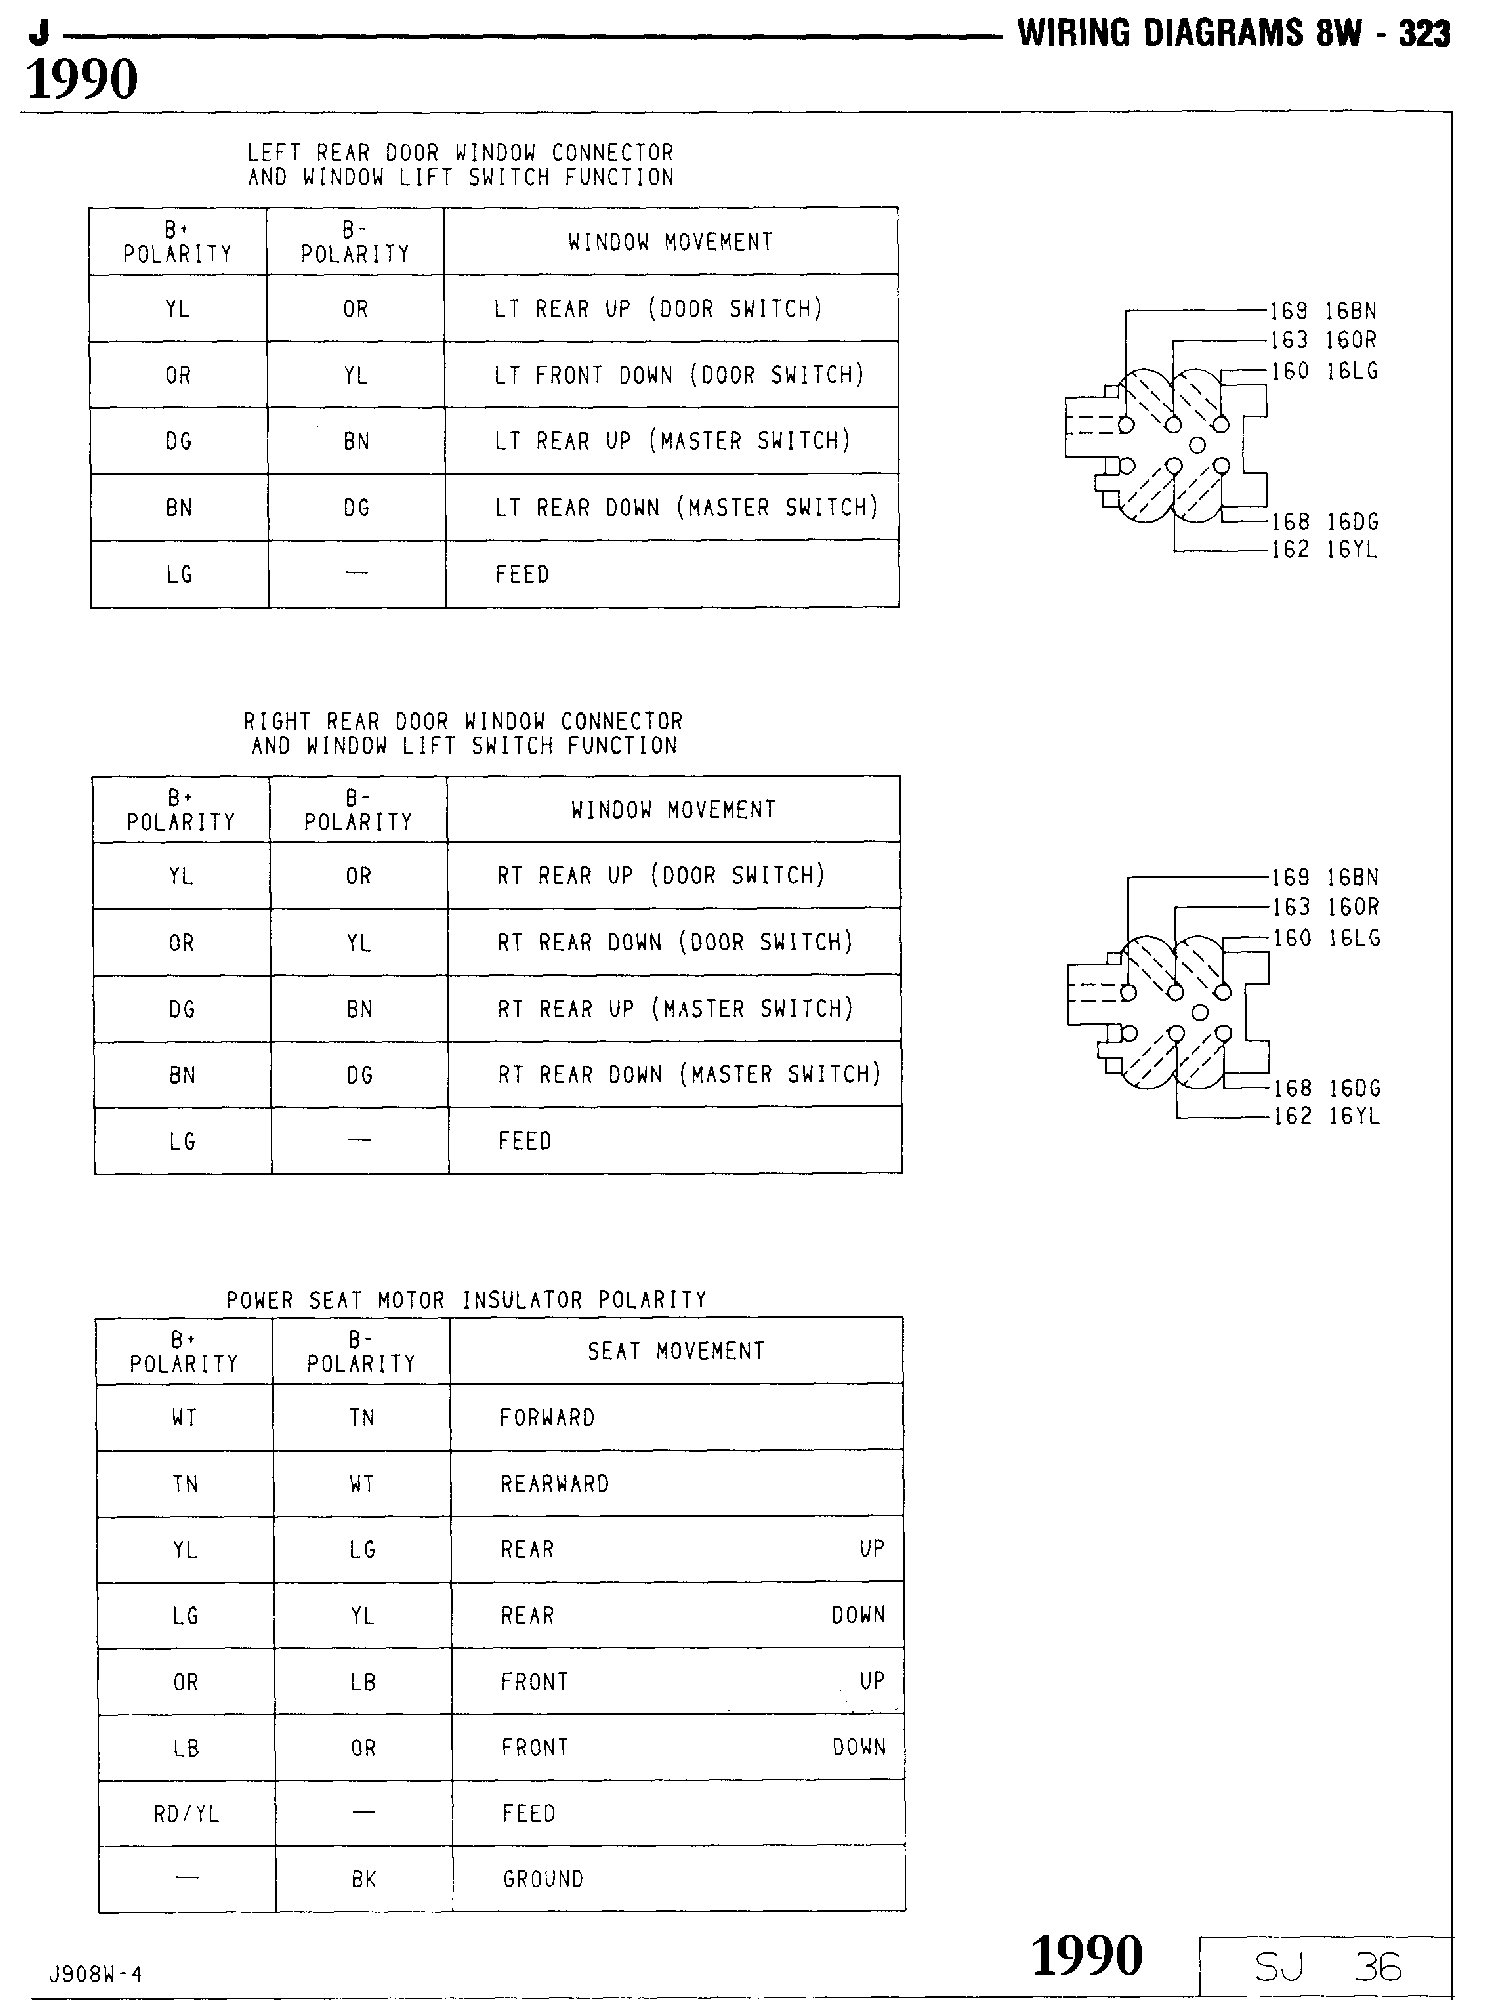 Powerwindow seatswitchfunctions 8w page 36